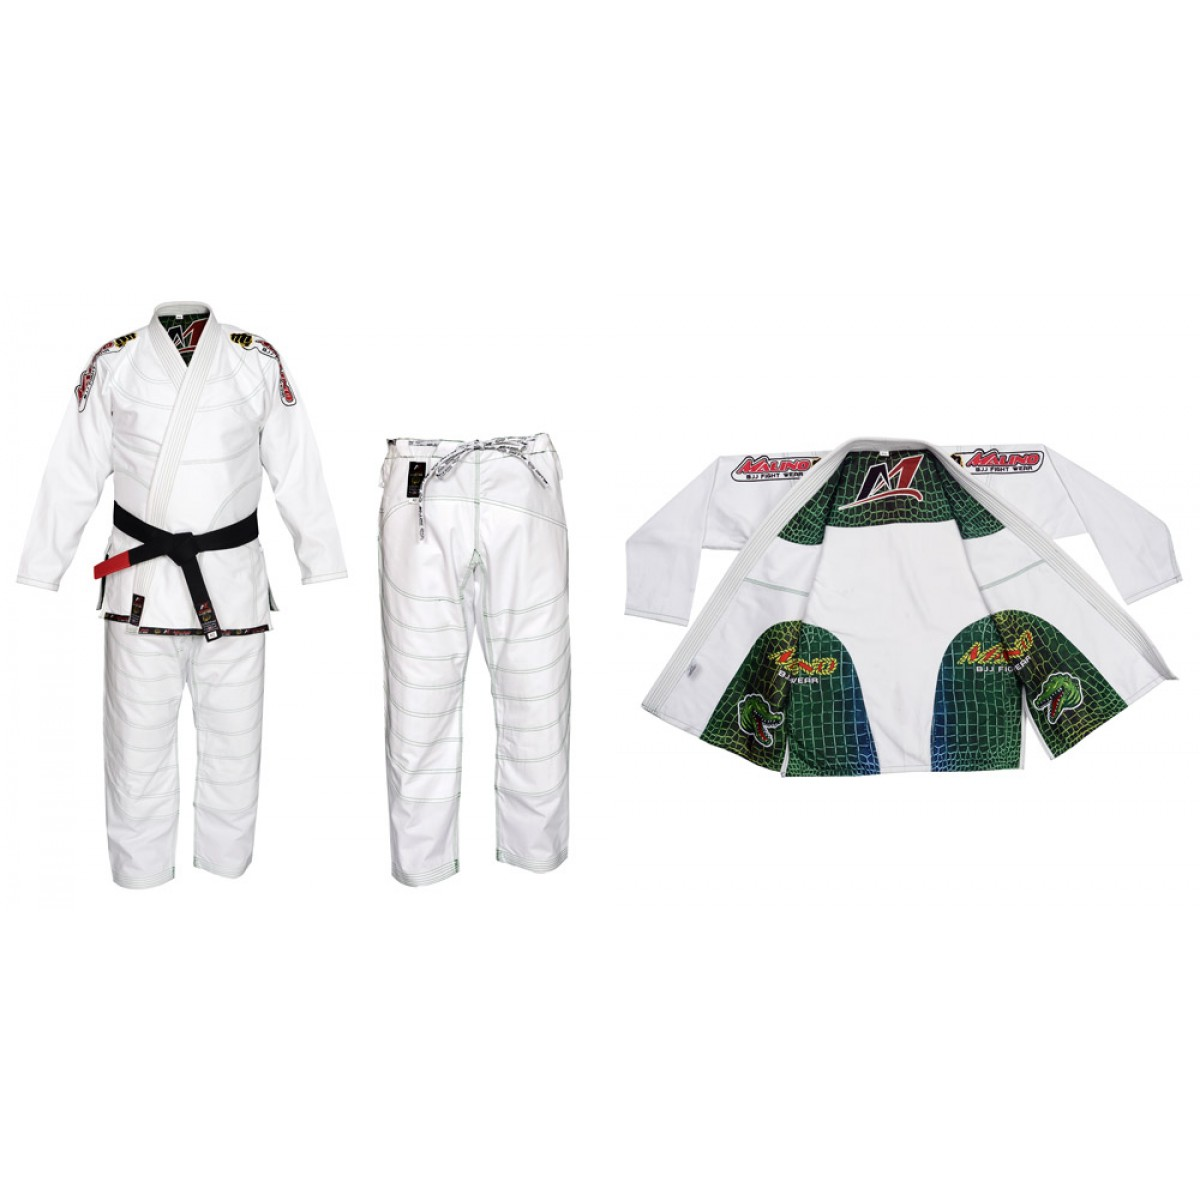 Malino BJJ Gi Crocodile White Pearl Weave Cotton 450Gsm